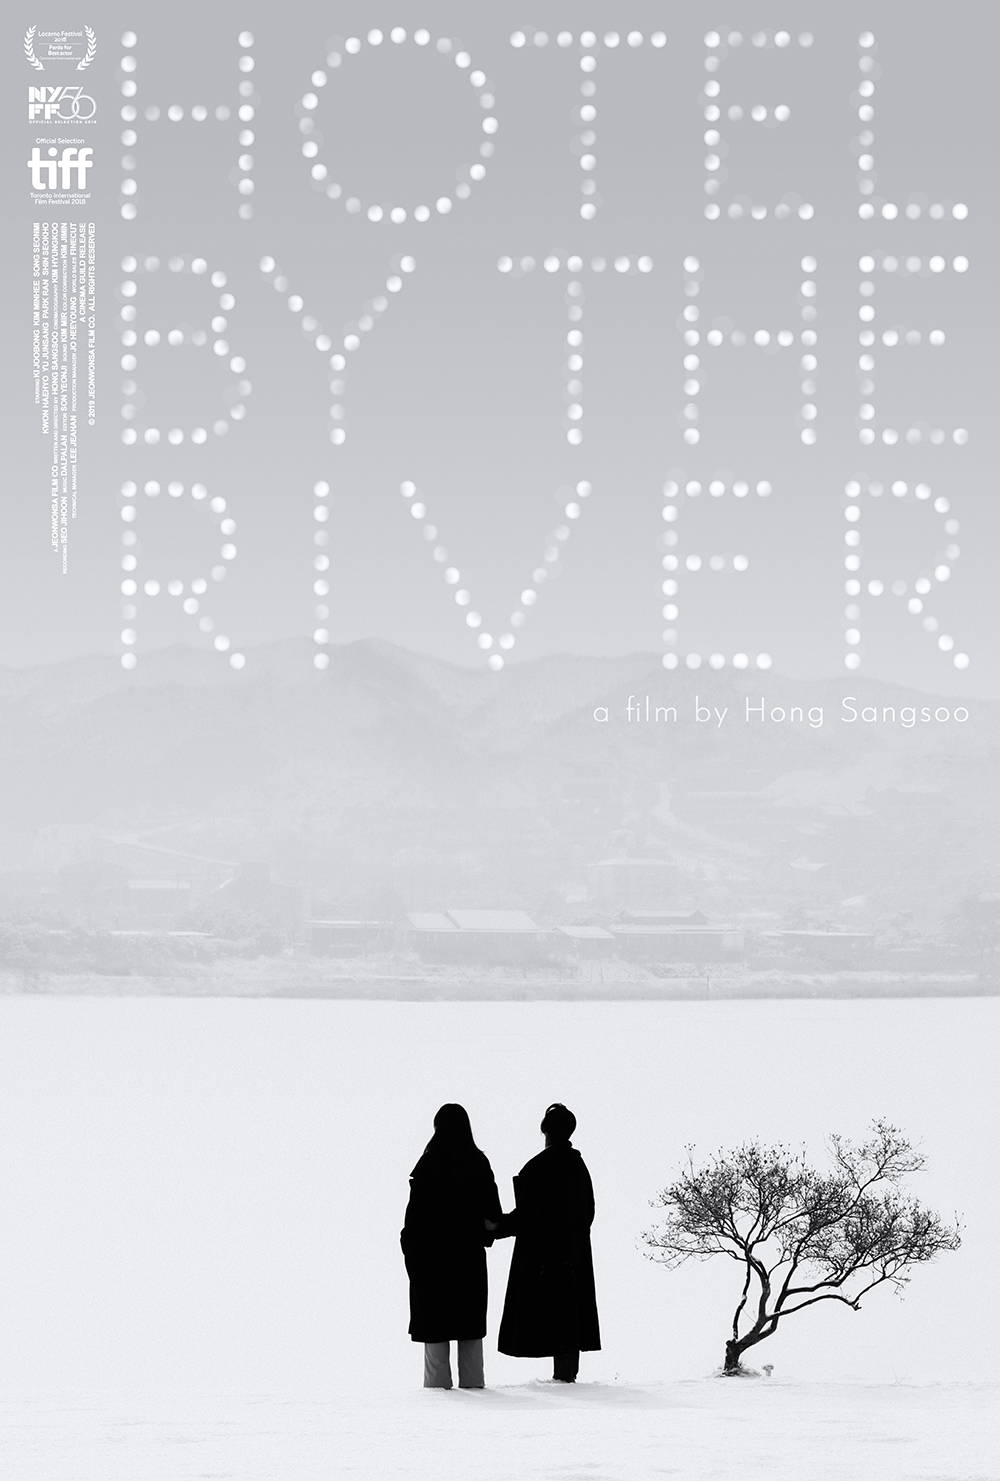 W A T C H:Hotel by the RiverAn aging poet who senses the end is near calls upon his two estranged sons to join him at a hotel by a river. A simple premise for a film shot simply in black and white, Hotel By The River reveals realms beyond the ordinary day-to-day existence of its characters. How do our lives define us? What do they mean? Ponder the power of coincidence, the kindness of strangers, and what heals us vs. what ails us. Unadorned language and low-key camera work harken back to French New Wave cinema with all the unassuming poetic tenderness that Korean Director Hong Sang-soo is known for. Playing through the end of April at Northwest Film Forum. -